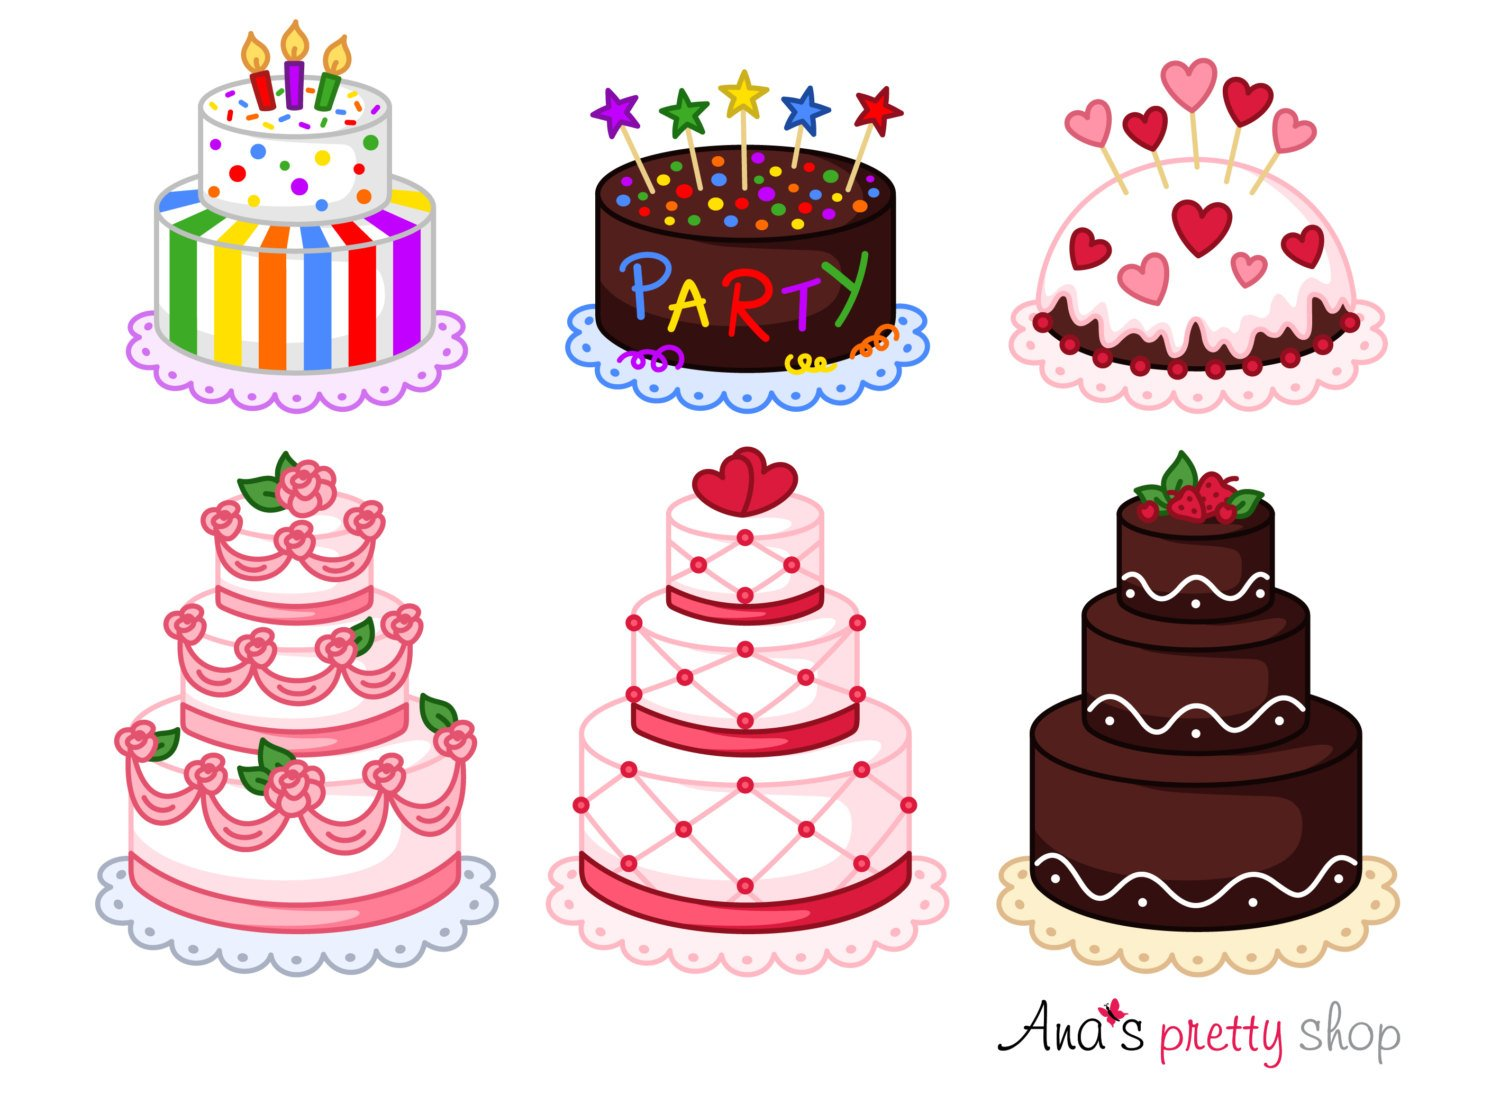 Bakery clipart pastry. Cake wedding birthday this